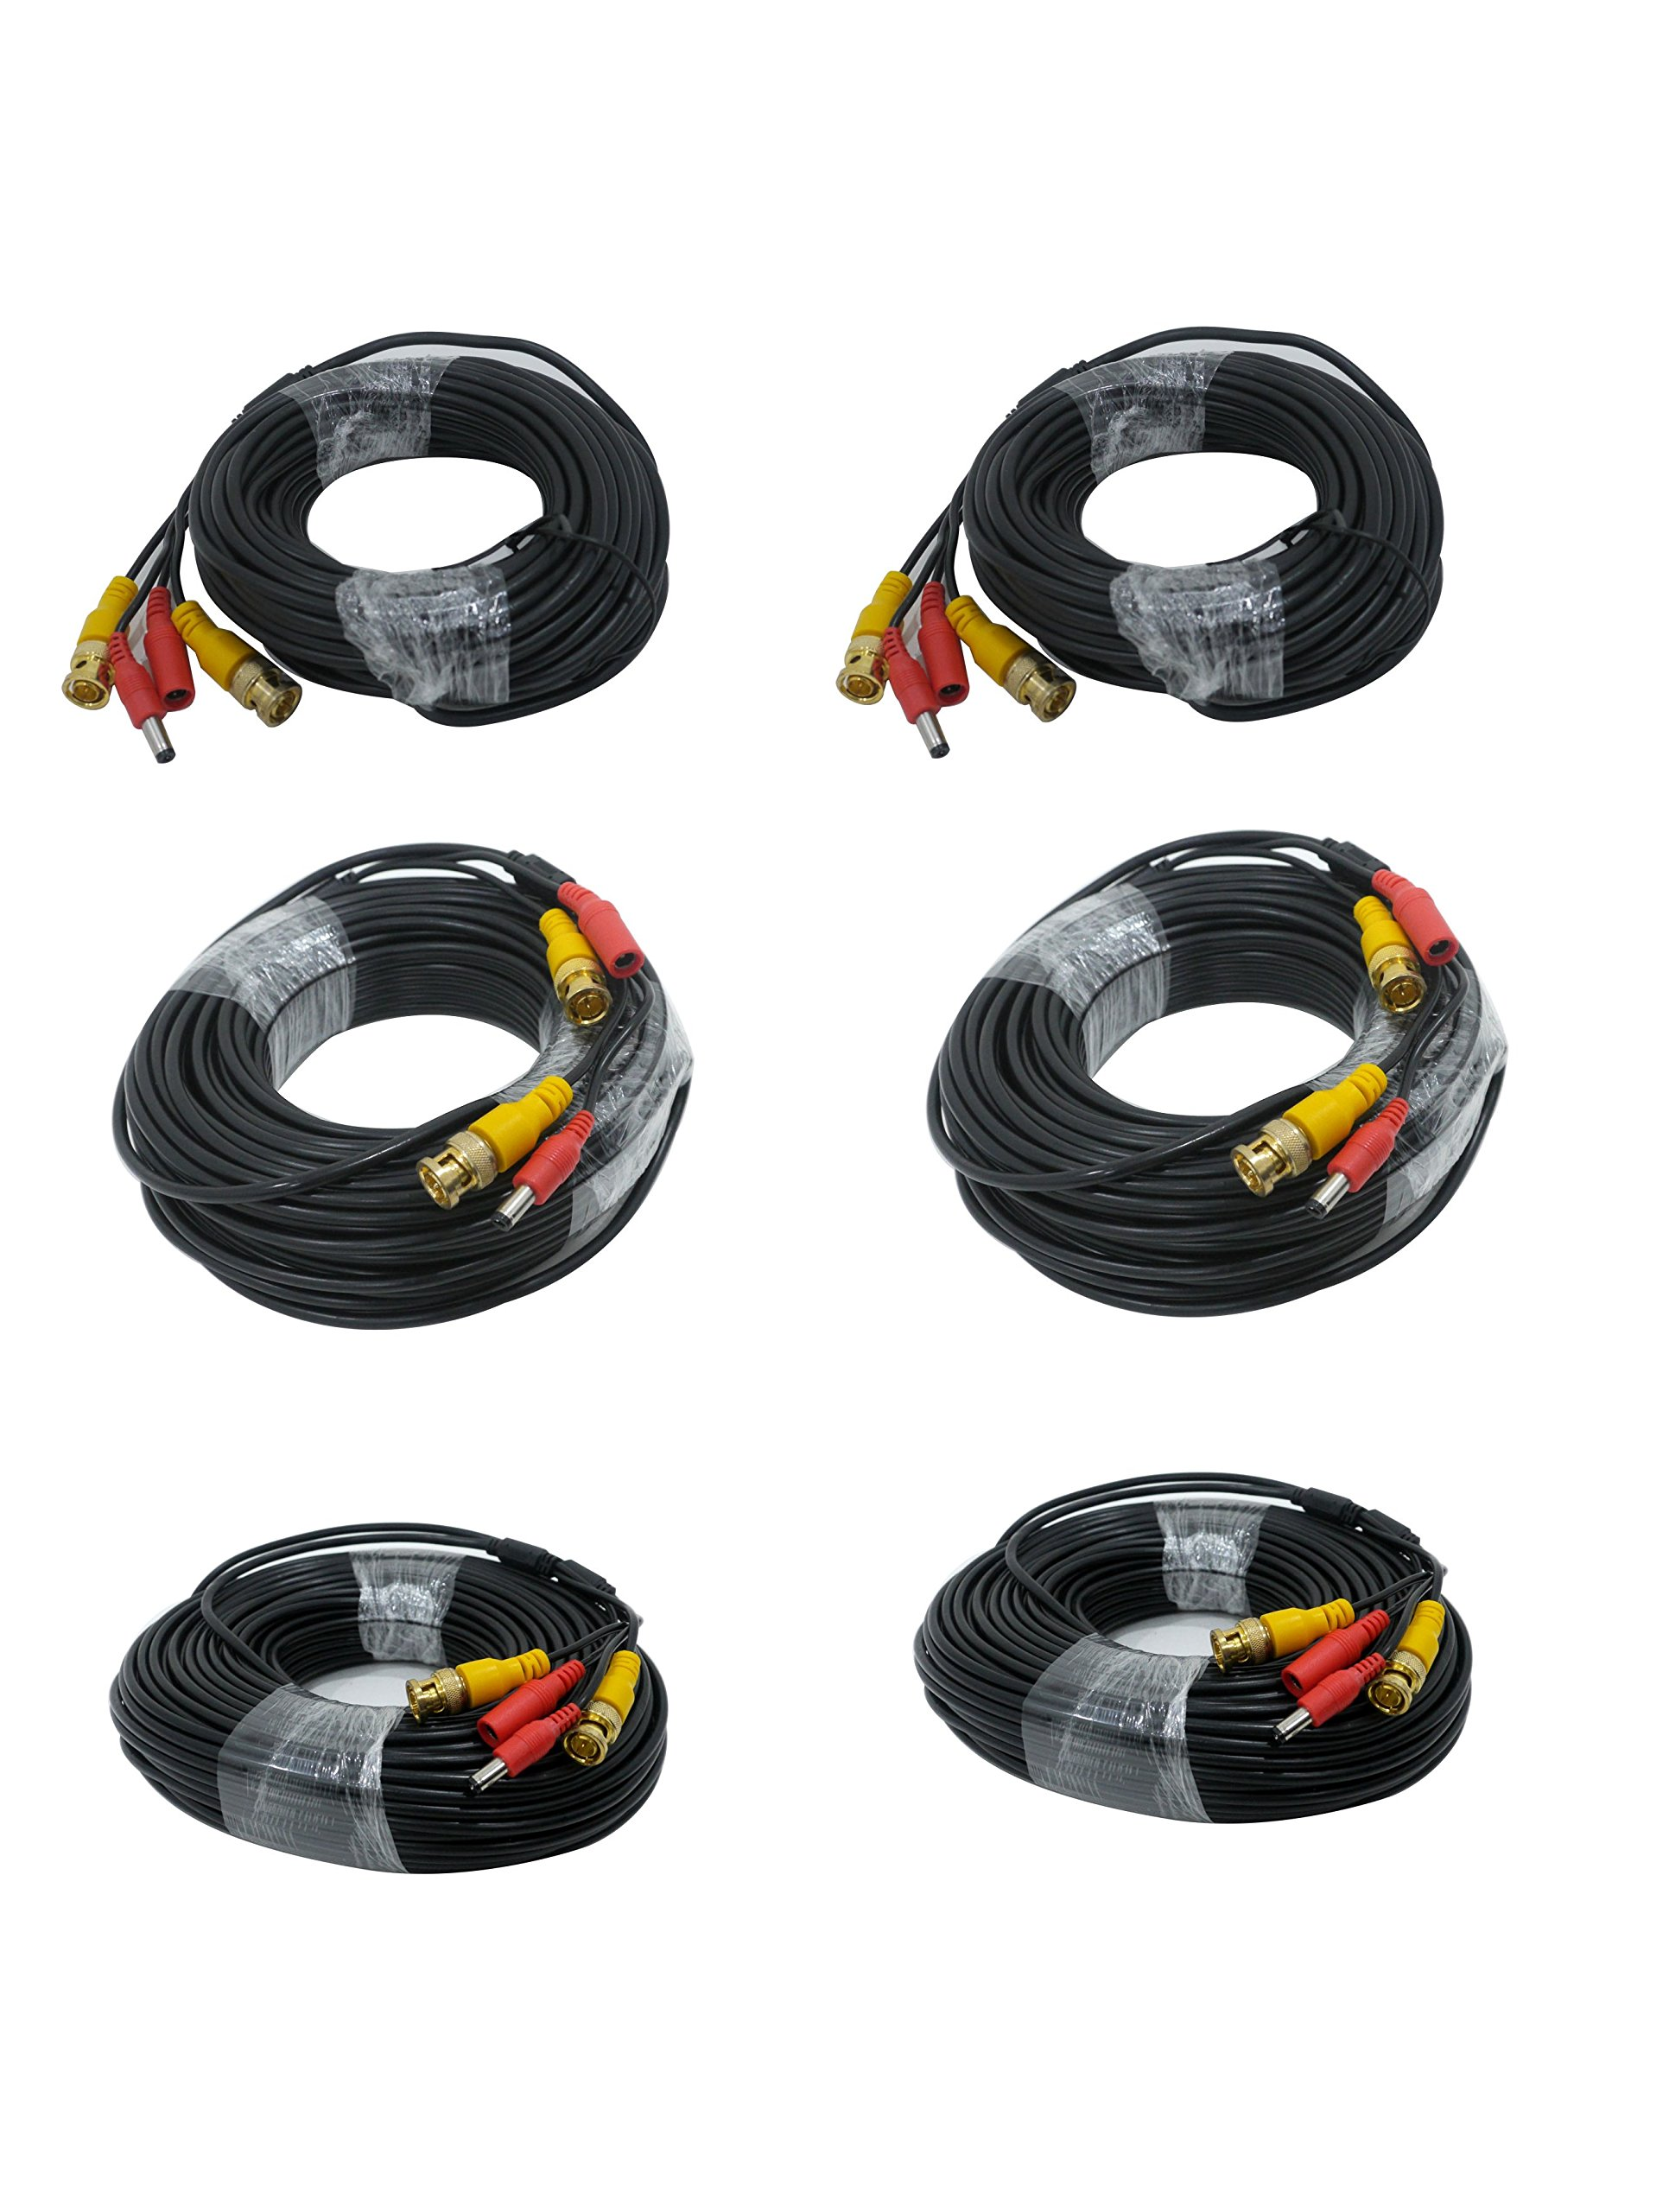 Standard Home Cabling Pack - 6 Cables 3 different Lengths - 2 x 150ft. - 2x 100 FT - 2 x 50 foot - Plug and Play BNC Video and Power Siamese HD TVI CVI AHD SDI Analog CCTV Surveillance Camera Cables